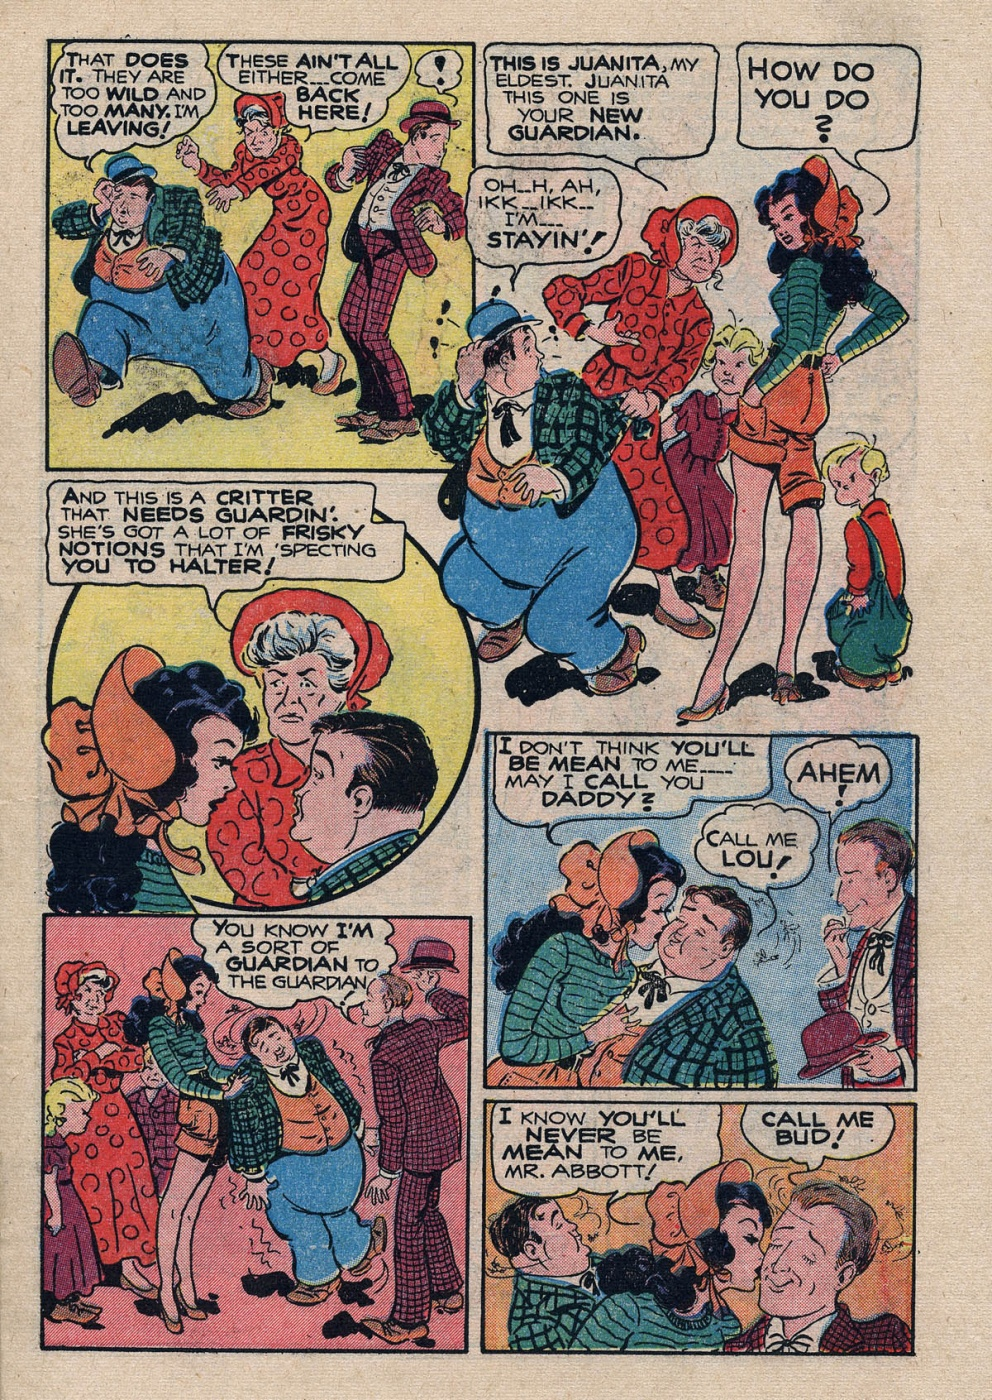 Funny Comic Strips - Abbott and Costello 001 (Feb 1948) 13